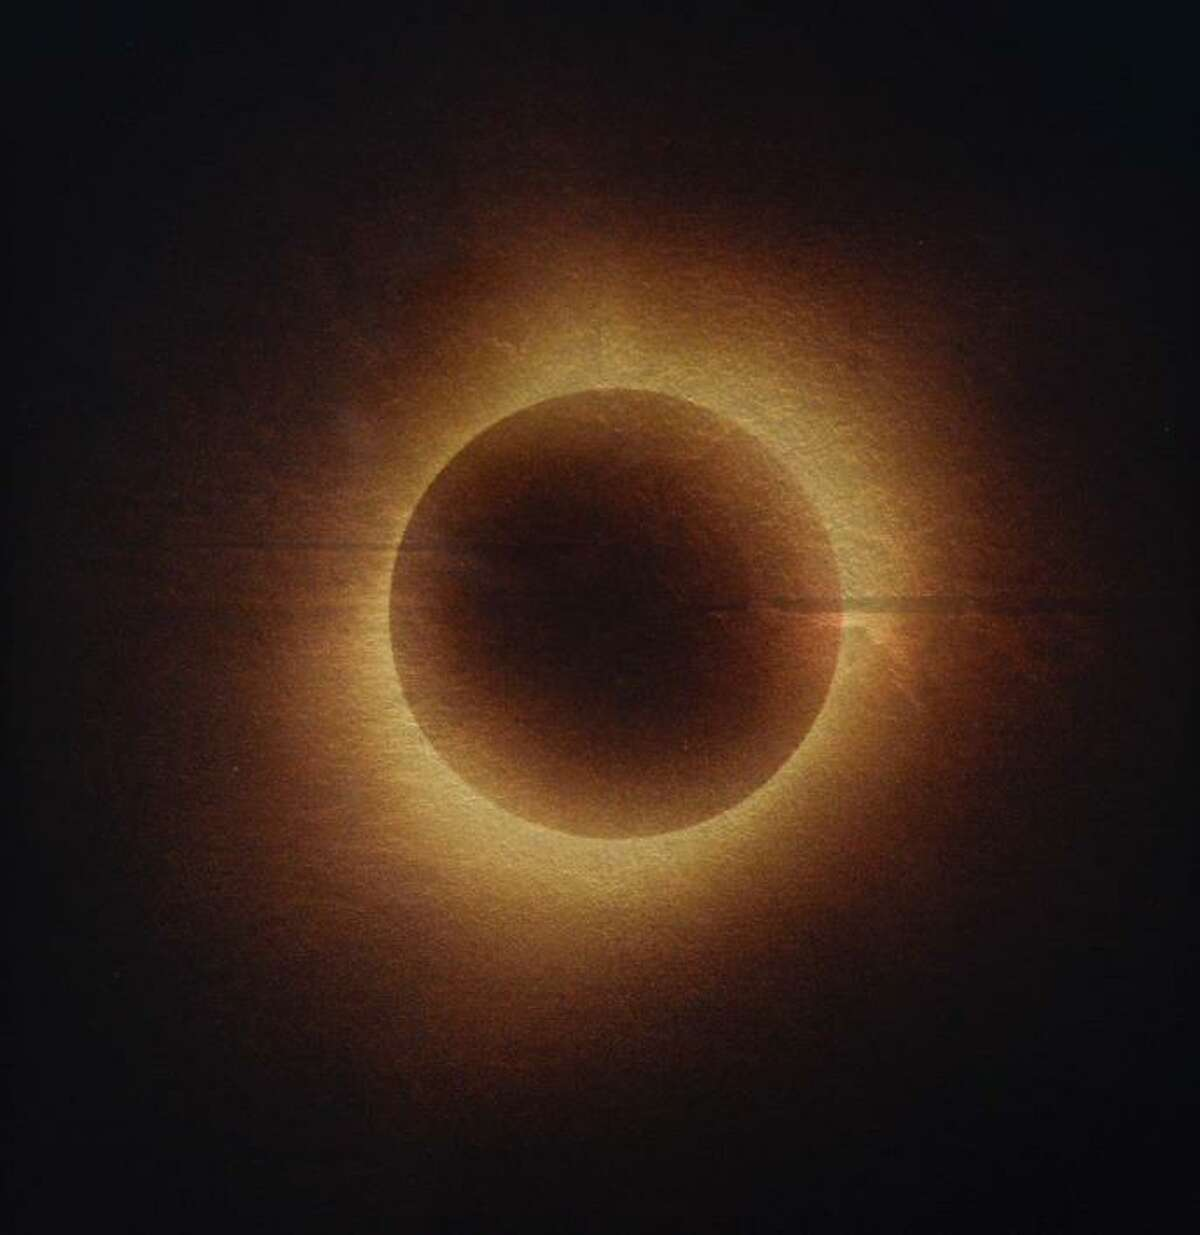 """""""Solar Eclipse, Nebraska, August 21st, 2017"""" is among works in Kate Breakey's show """"Golden Hour,"""" on view through June 23 at Catherine Couturier Gallery."""